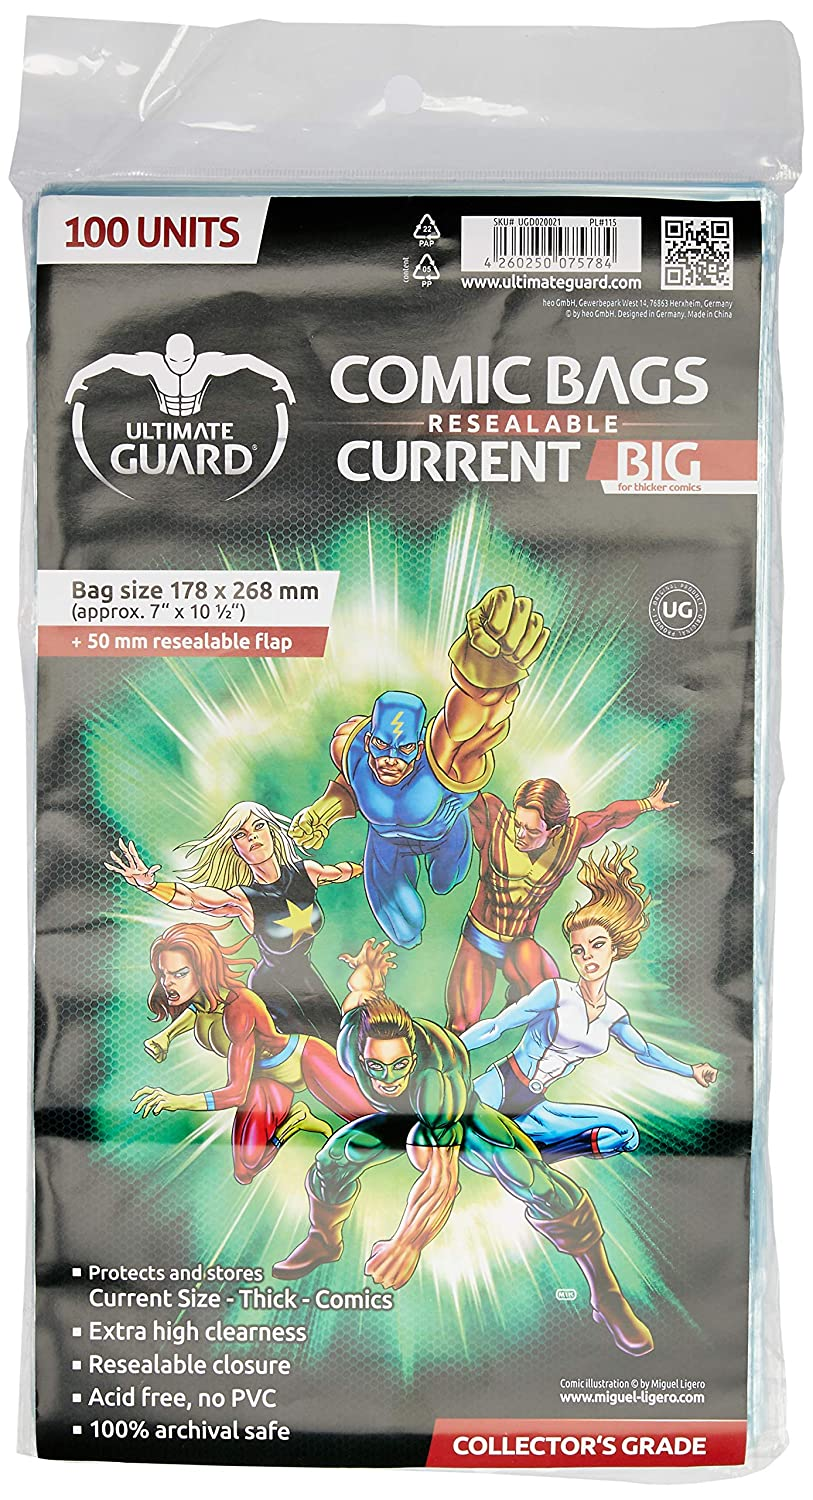 Ultimate Guard Comic Bags Big Bolsas con Cierre Reutilizable de Comics Current Size (100): Amazon.es: Juguetes y juegos